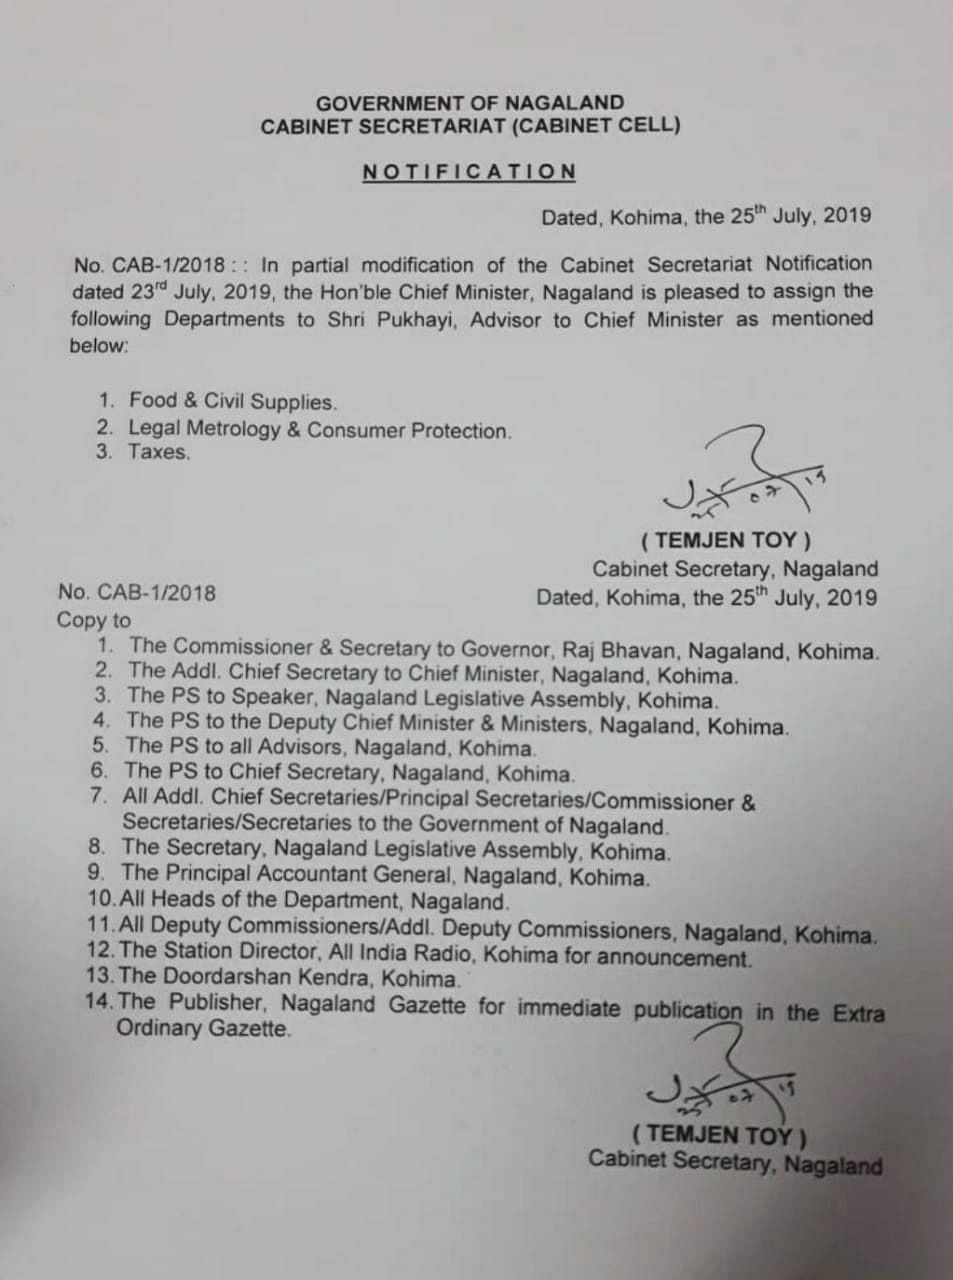 Copy of the notification issued by chief secretary Temjen Toy reallocating portfolios to Pukhayi